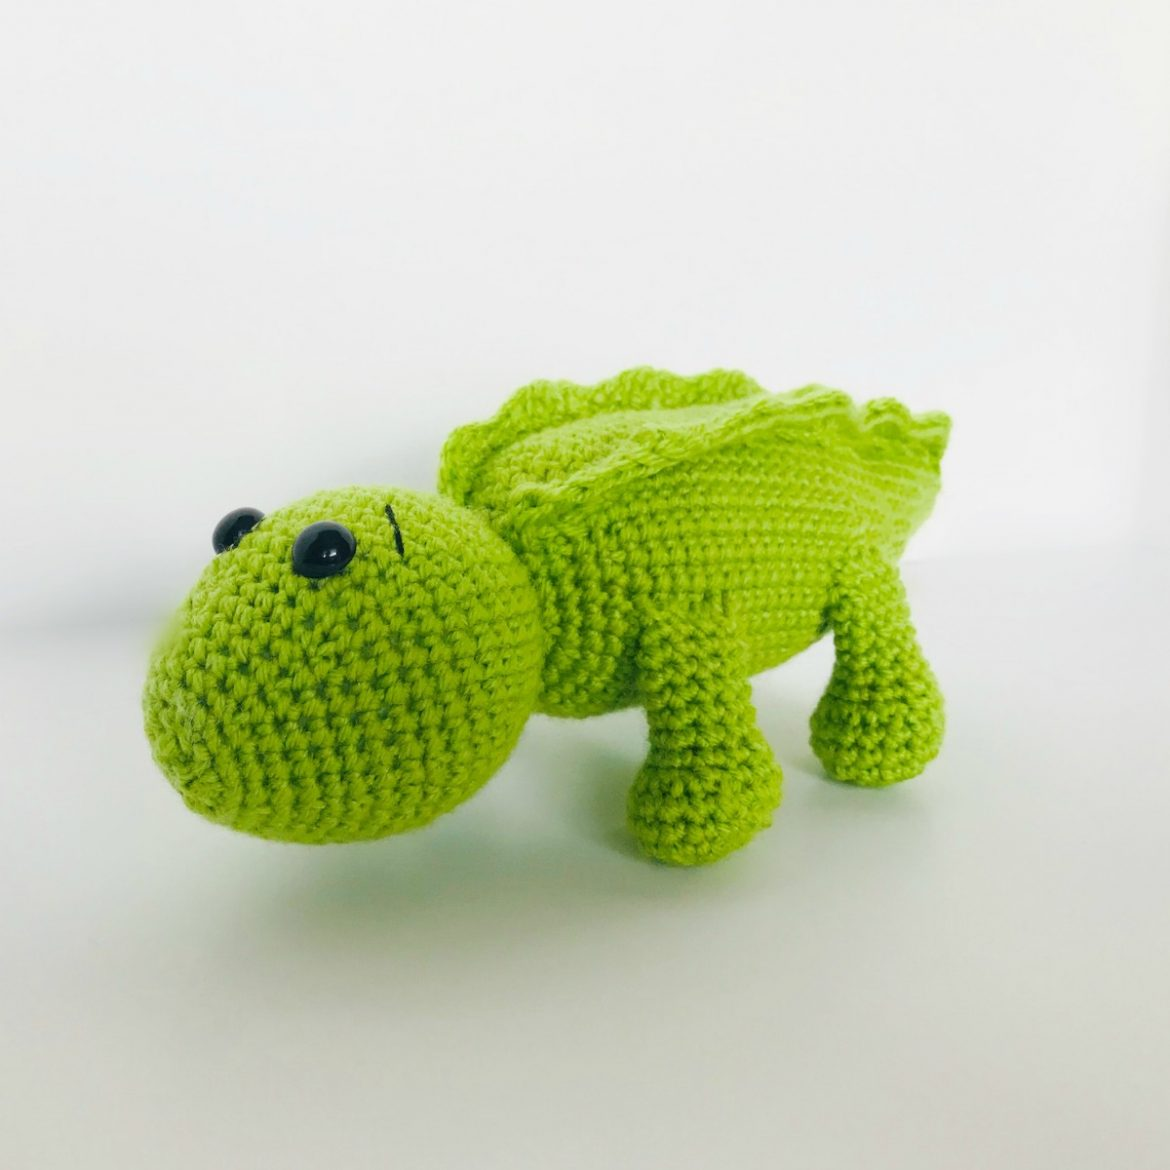 Crochet Alligator Pattern